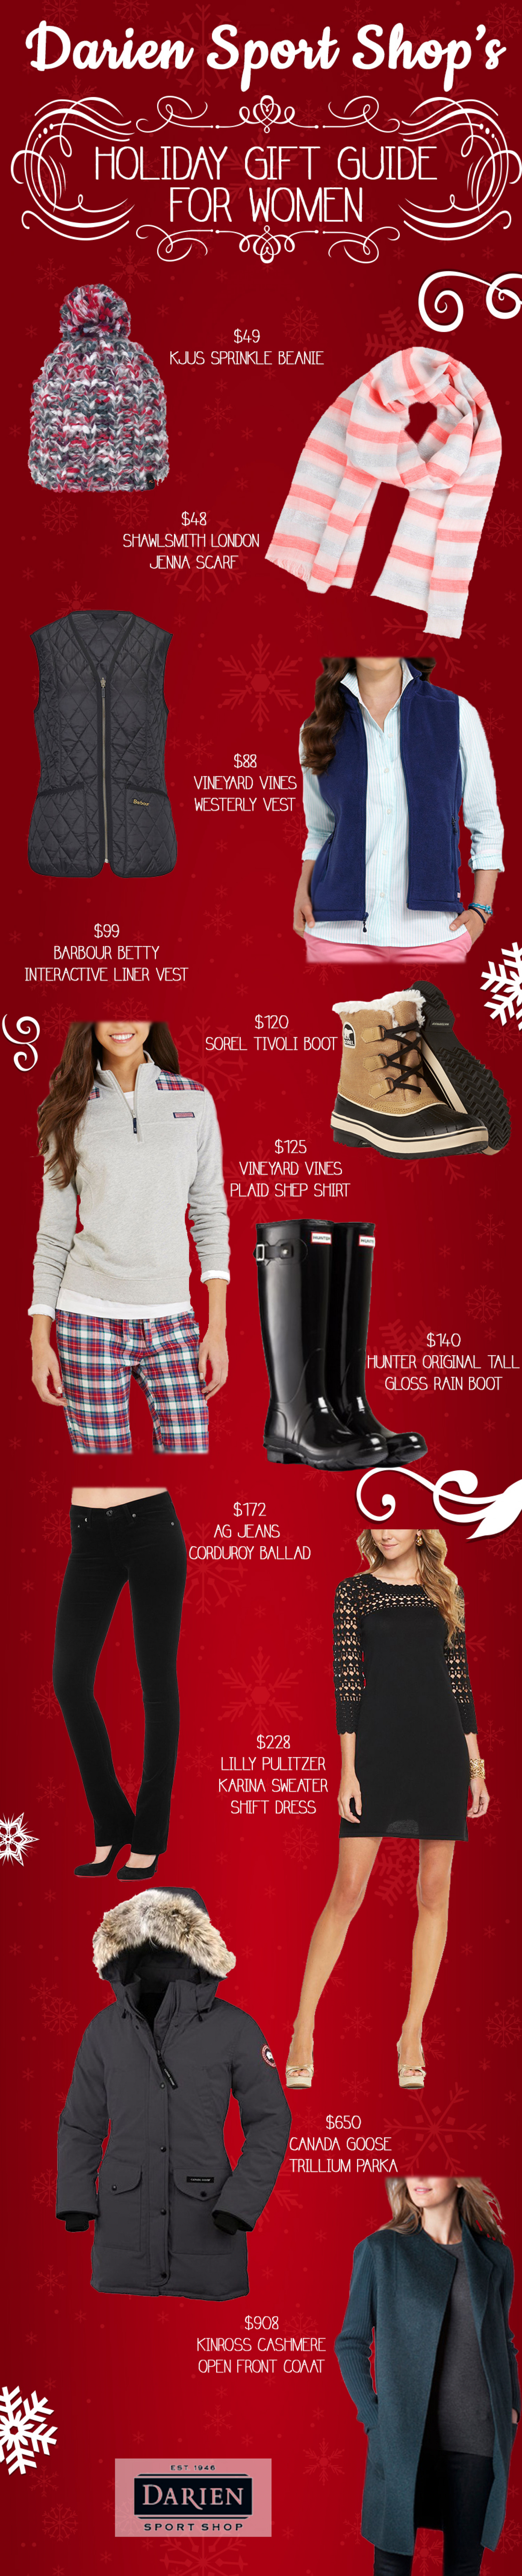 Darien Sport Shop's Holiday Gift Guide for Women Infographic